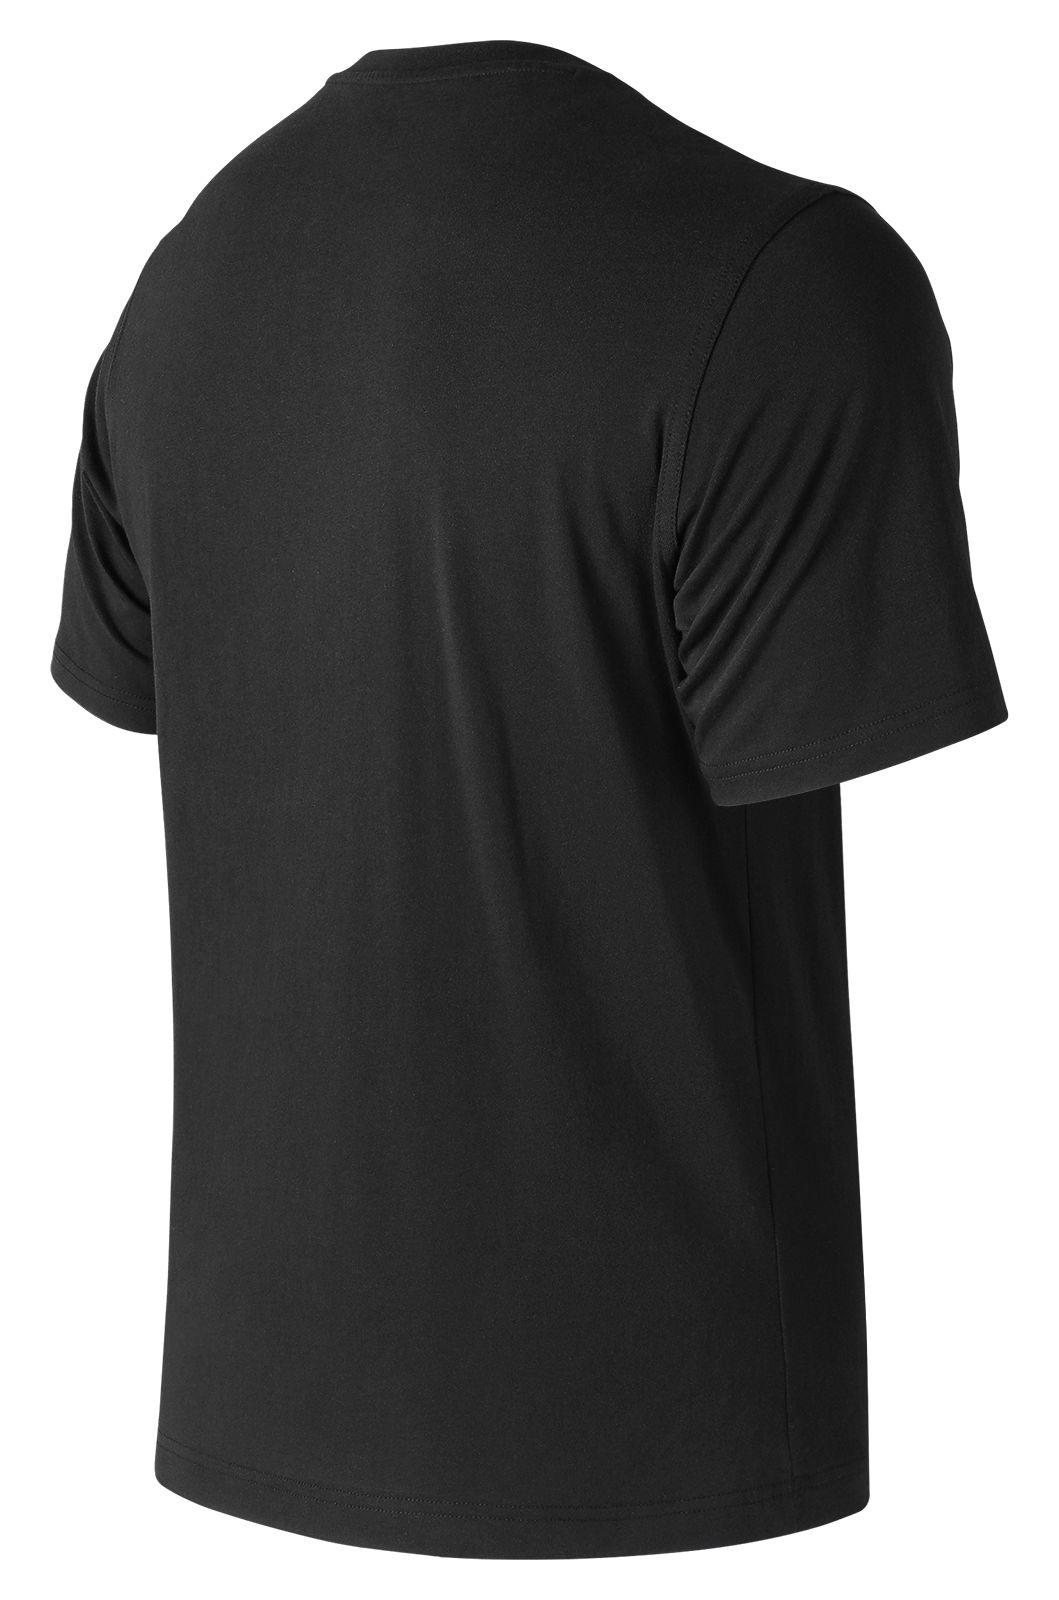 862ebd68e9d6 Lyst - New Balance Essentials 1906 Tee in Black for Men